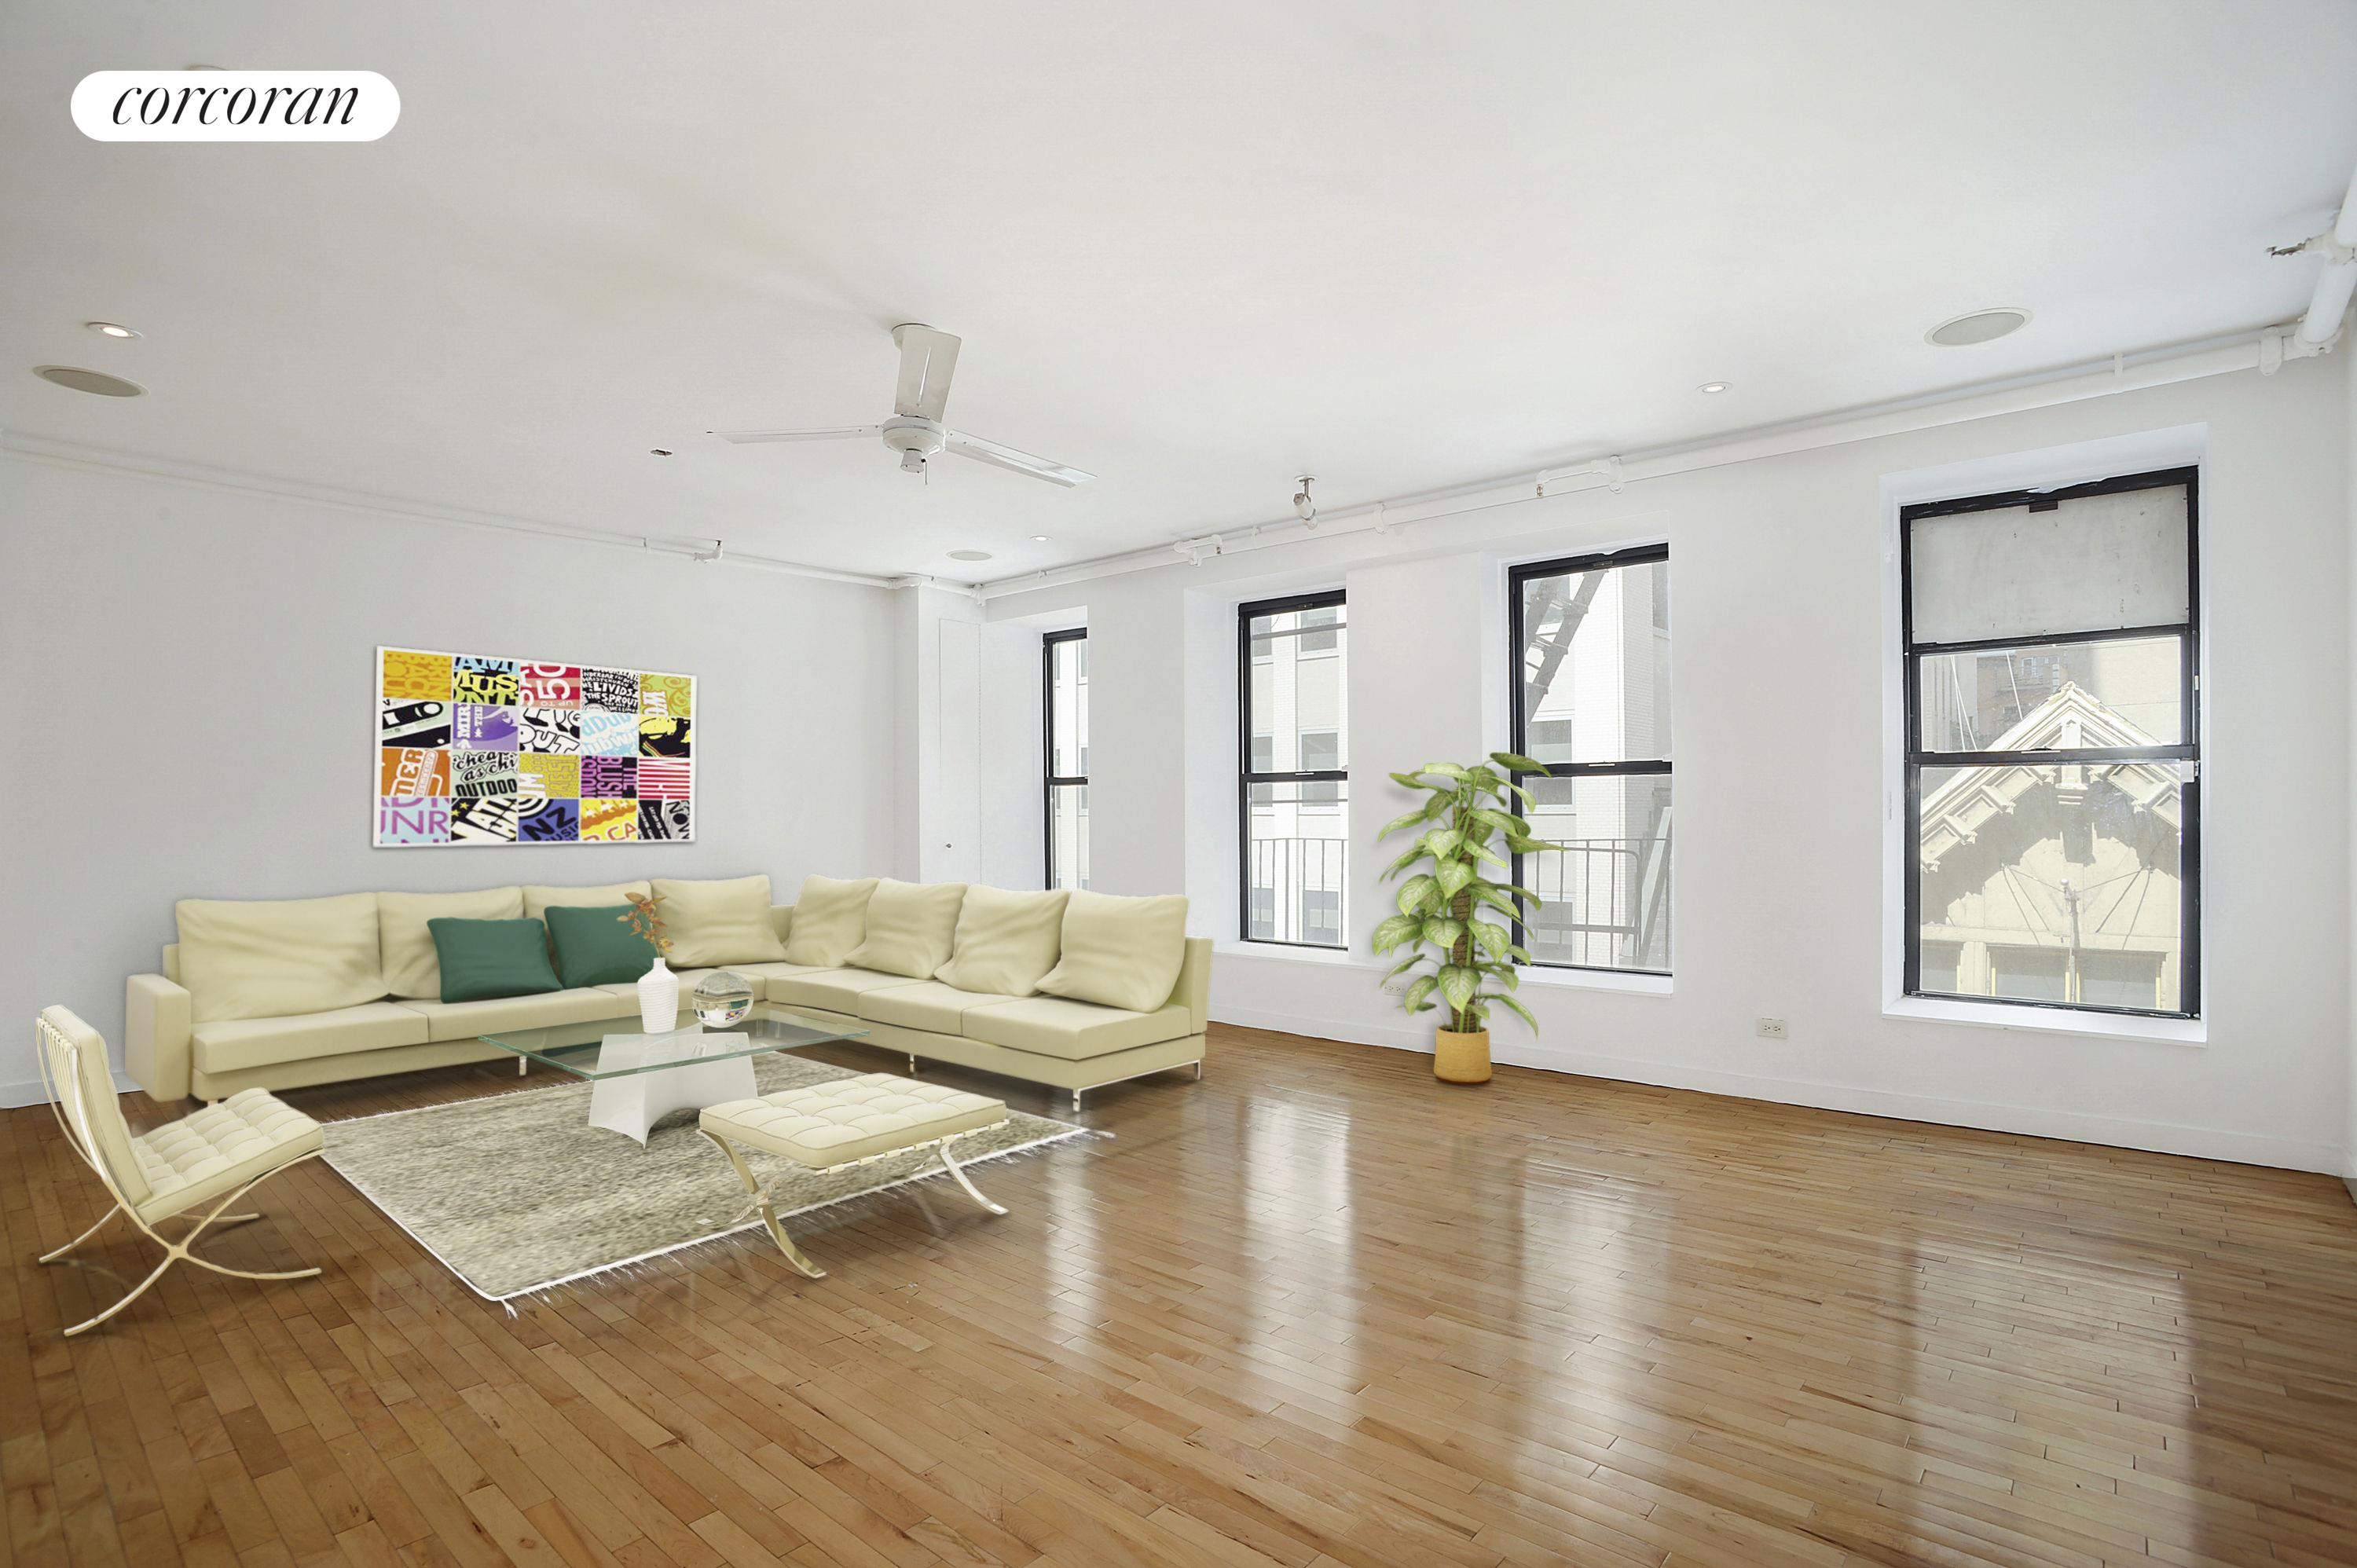 138 FULTON ST, Apt. 4A, Financial District